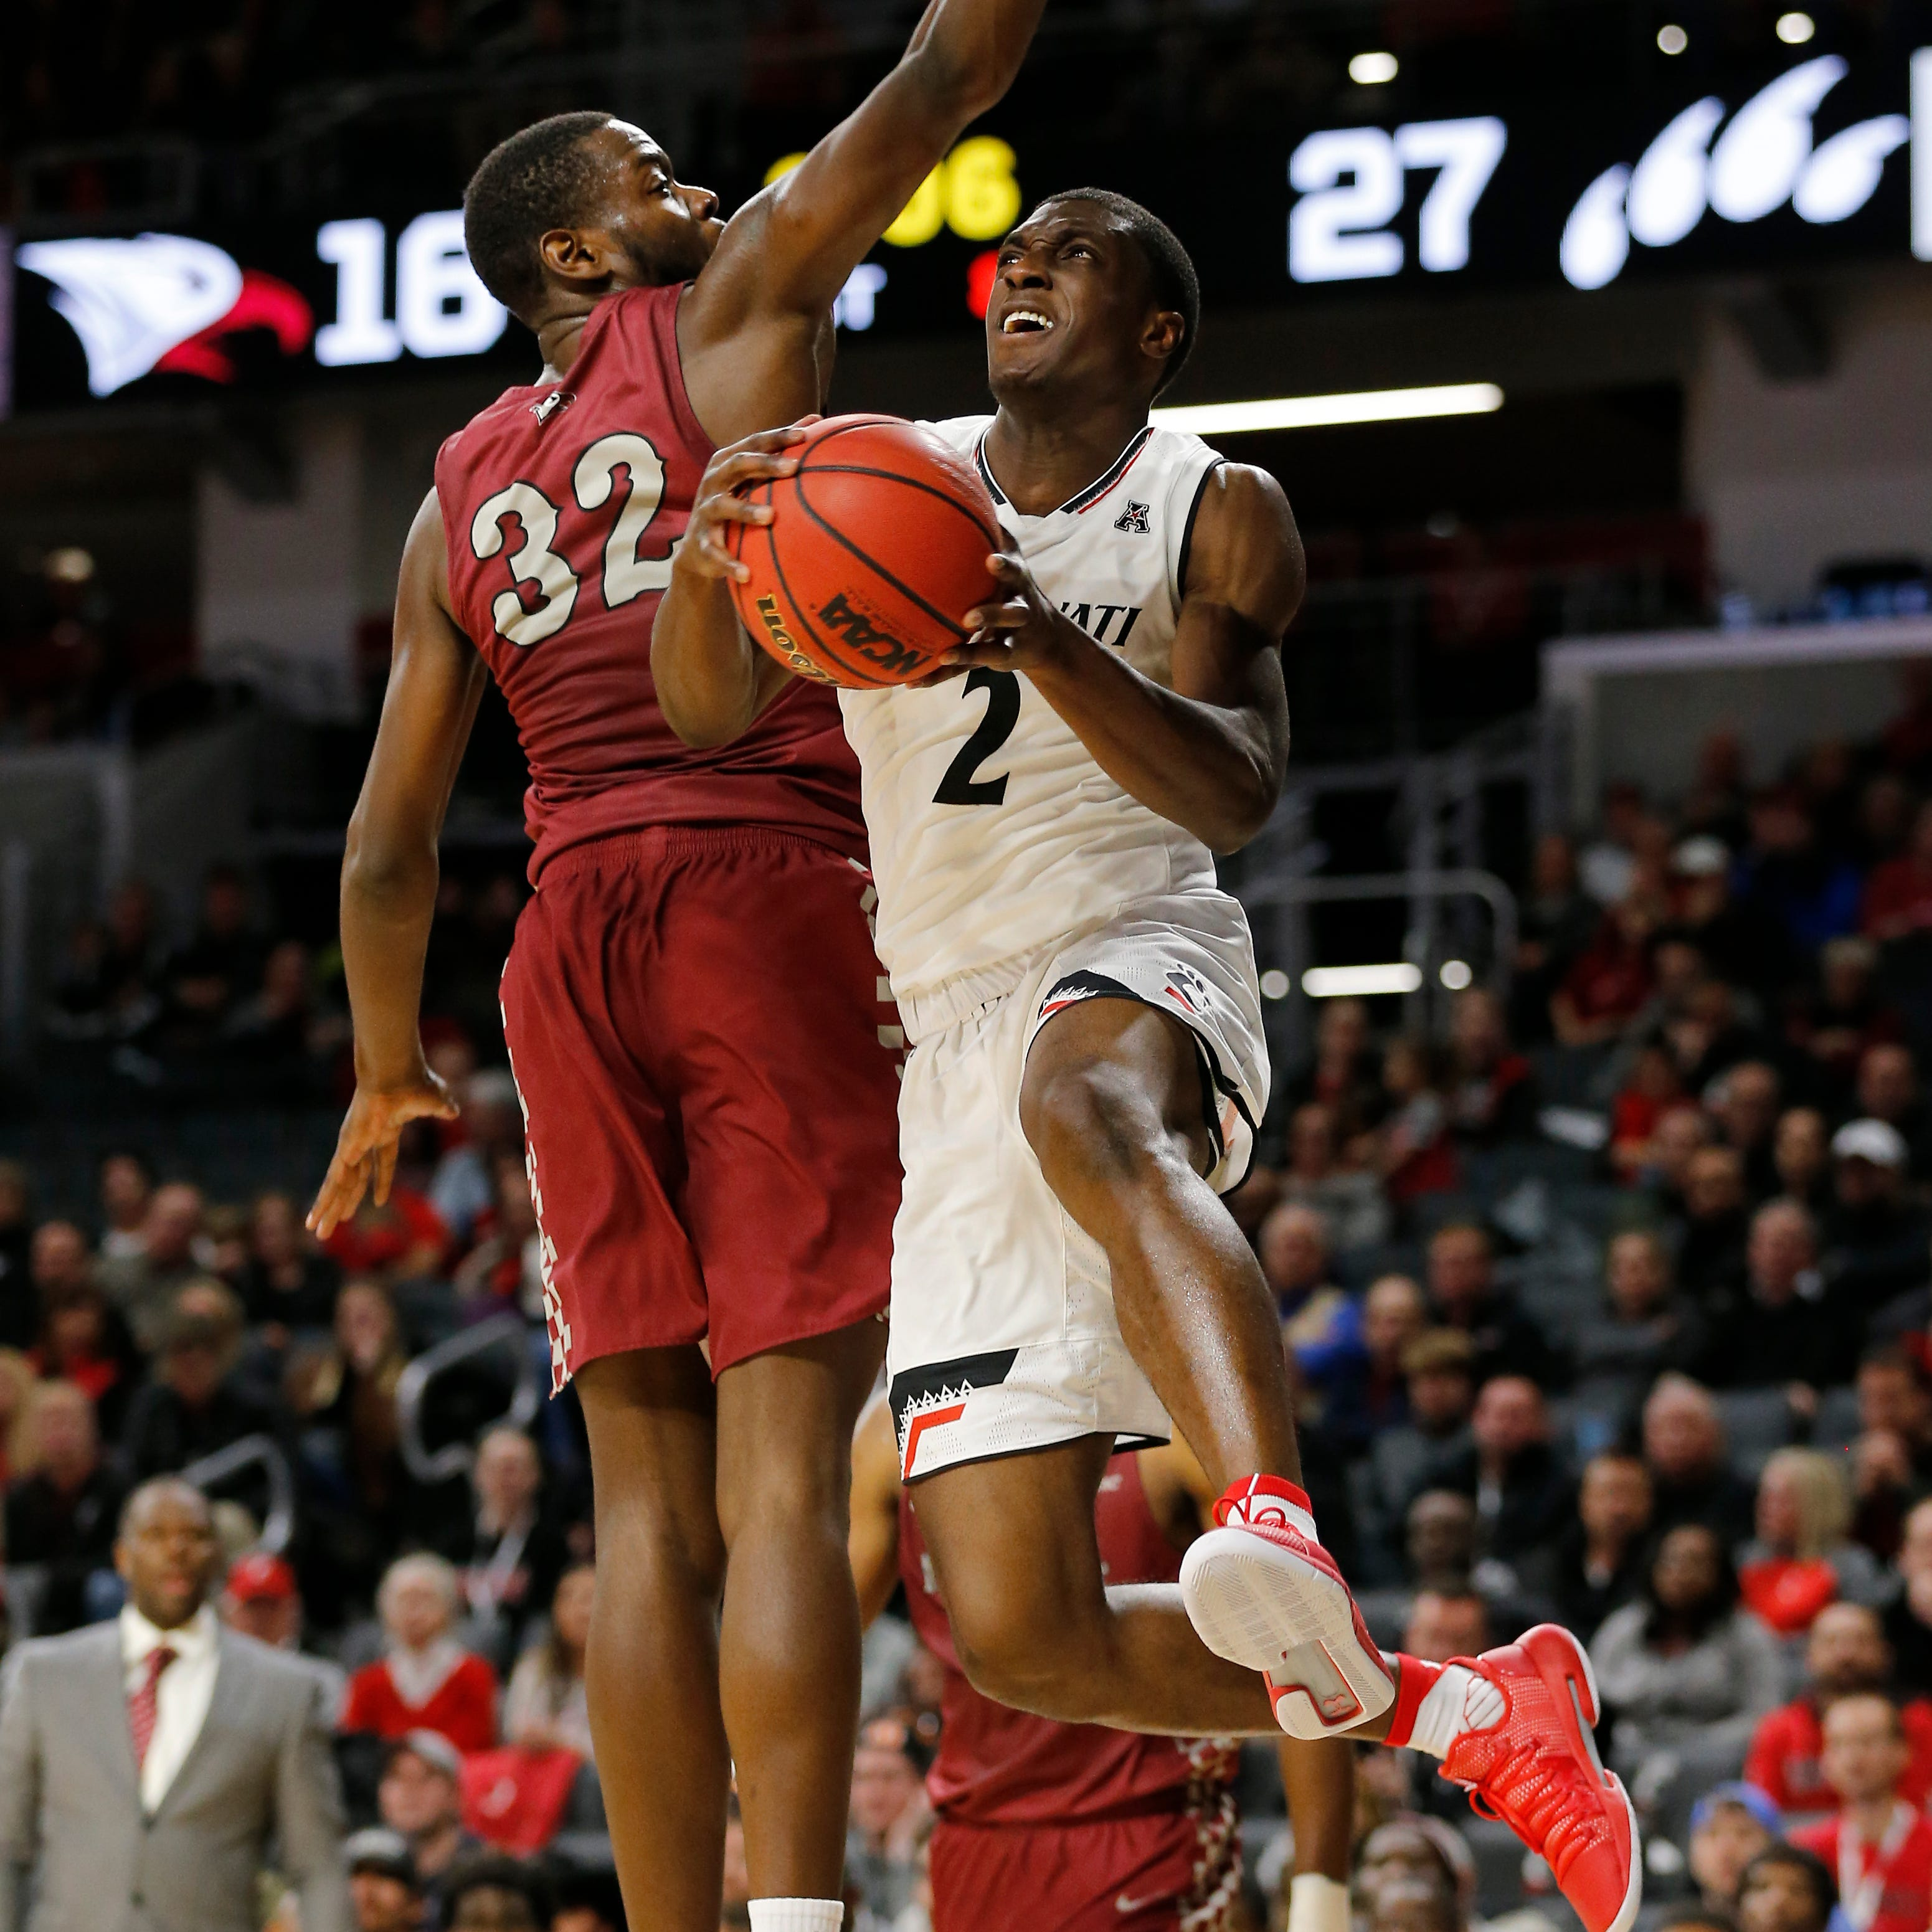 Analysis: Bearcats impose their will on North Carolina Central, win big behind Williams